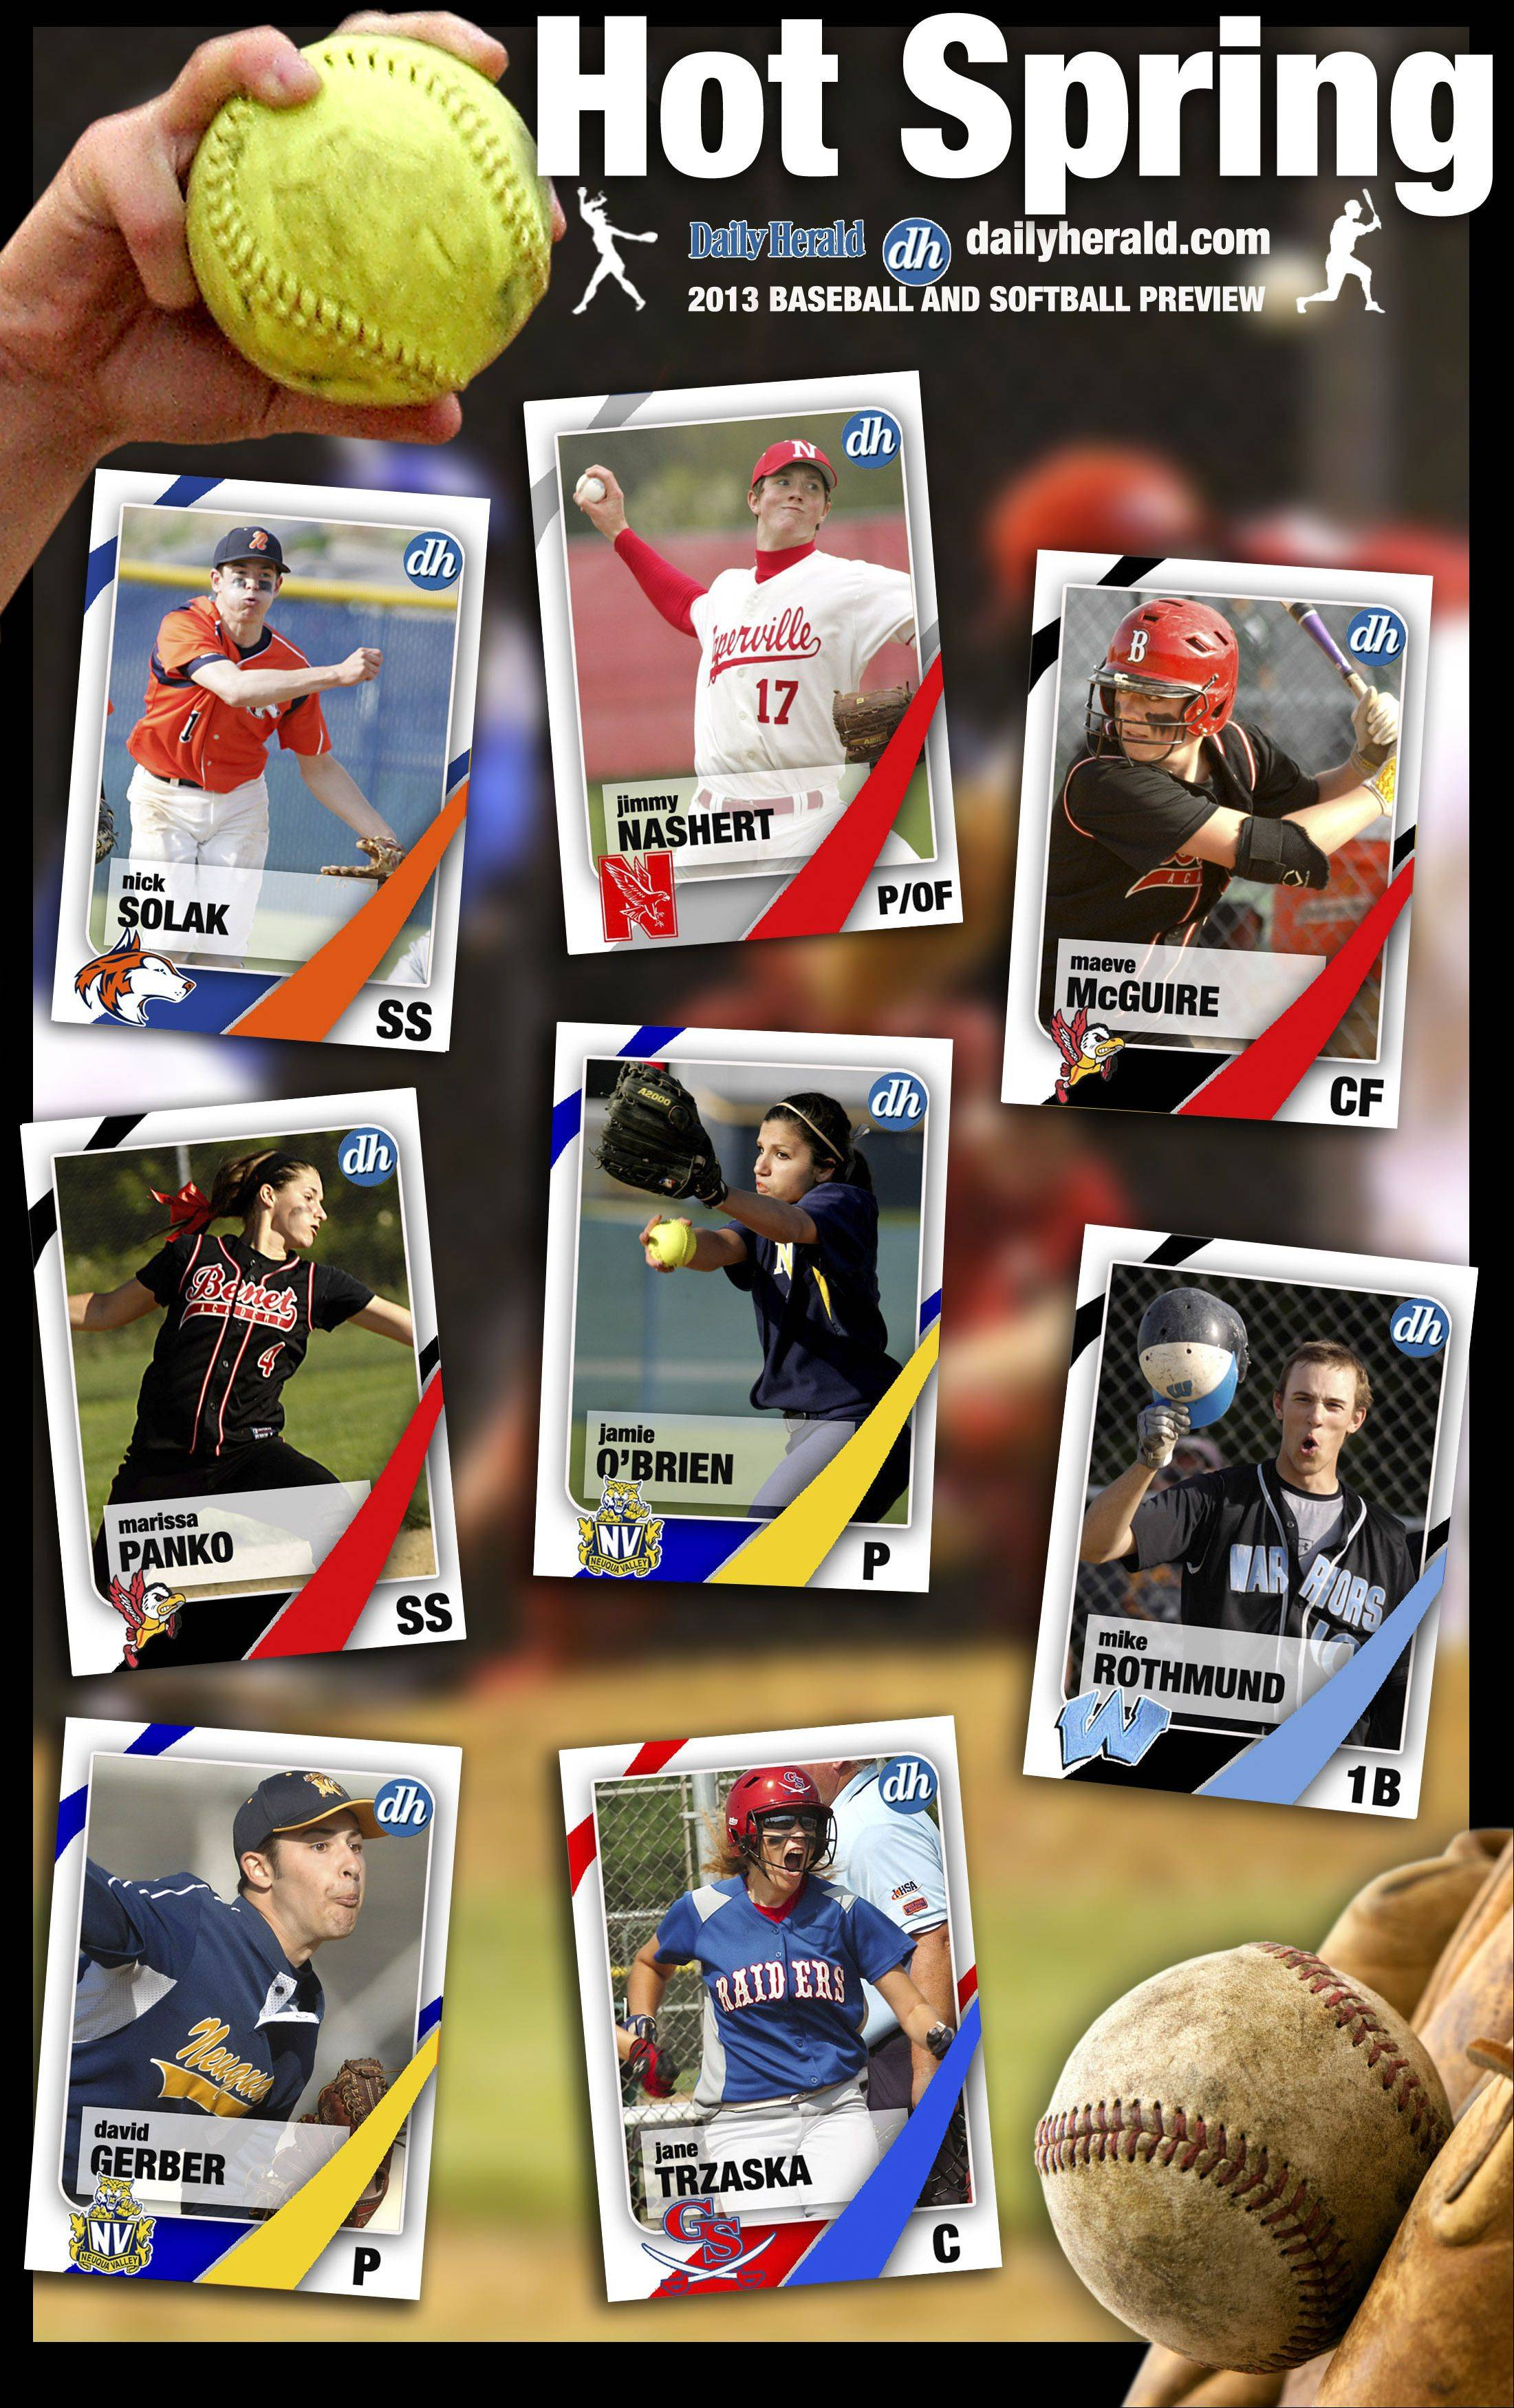 Images: Softball and Baseball Prep Trading Cards